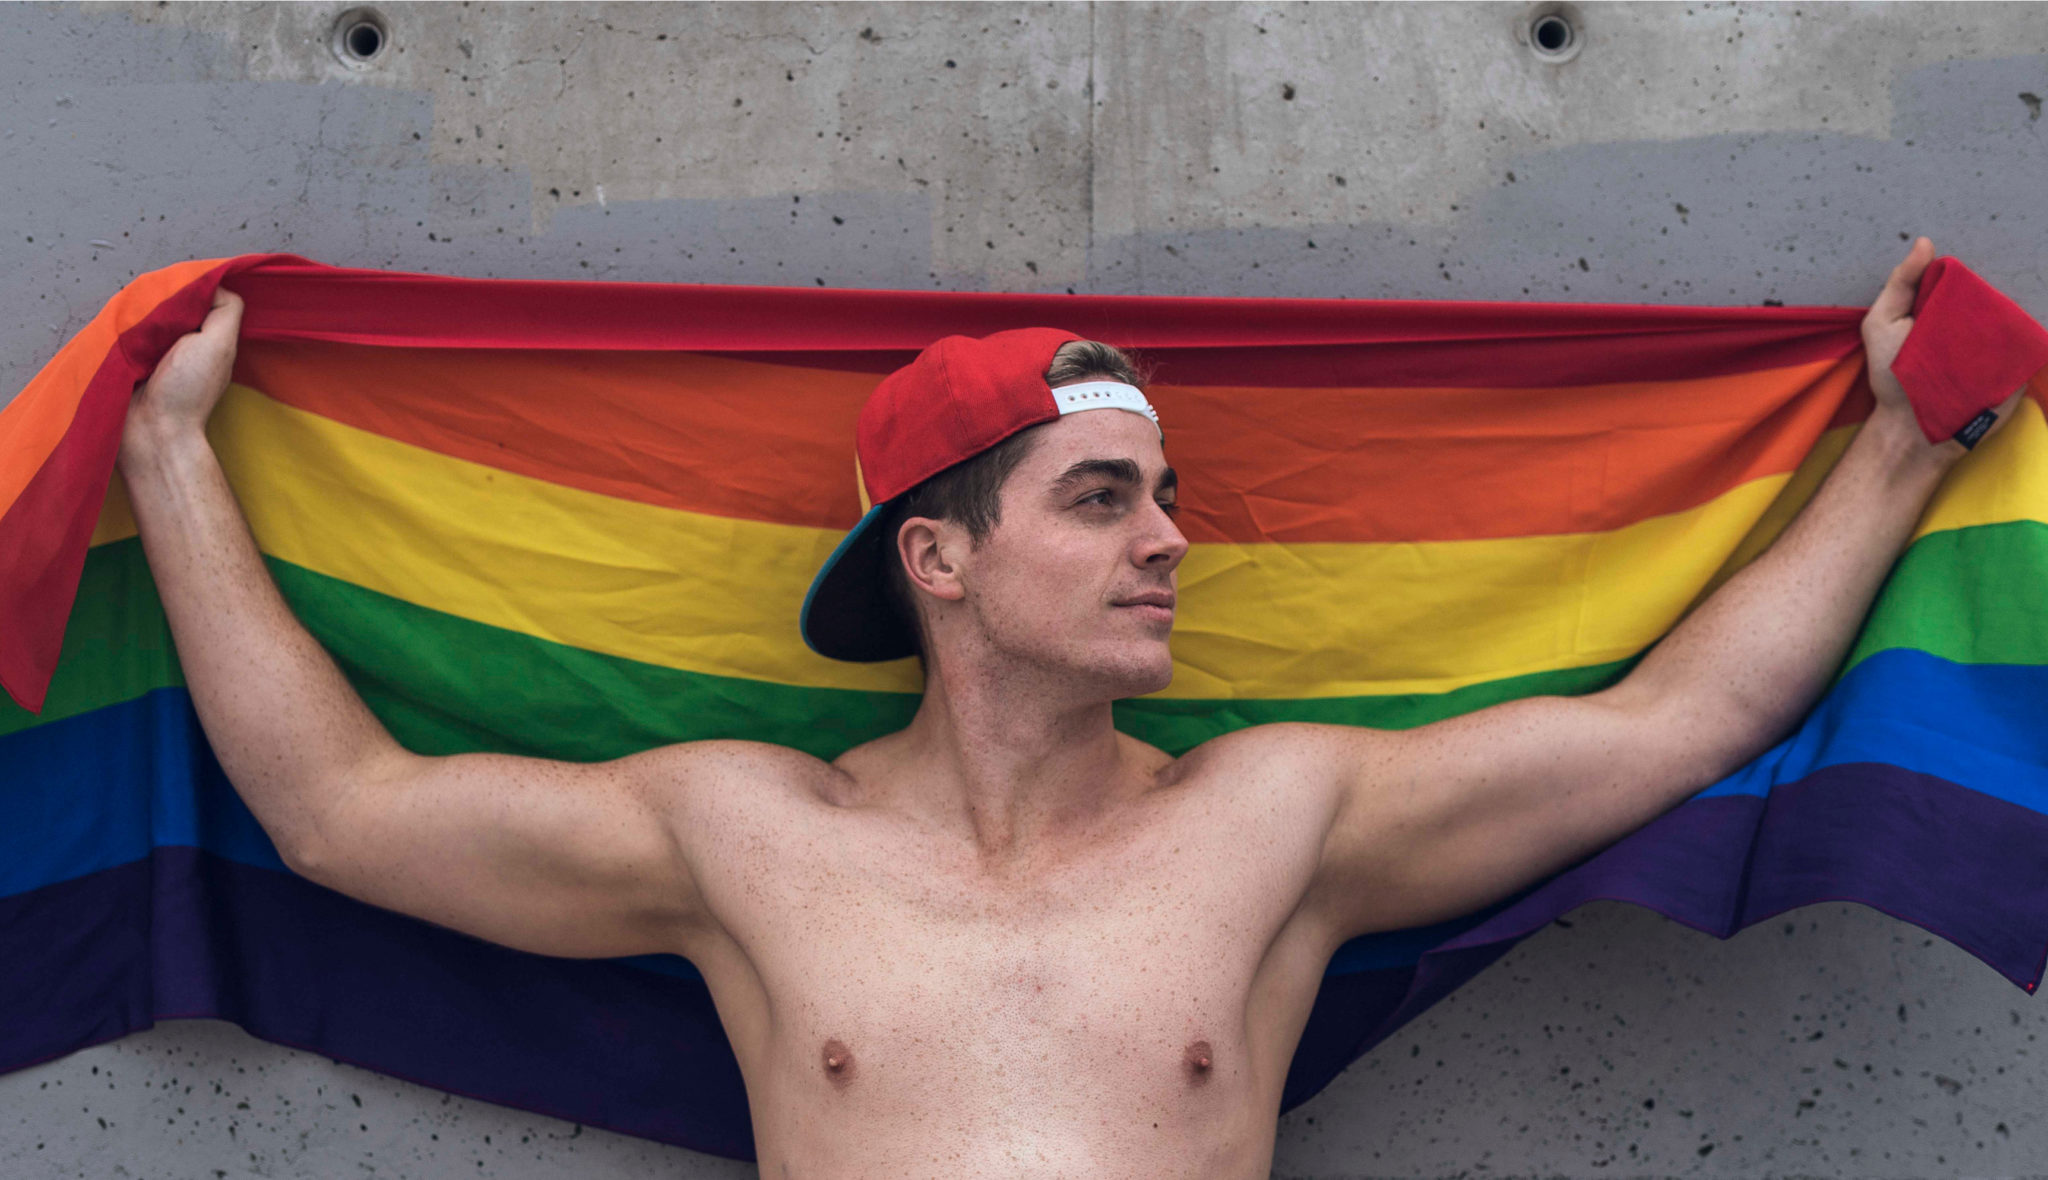 a topless man wearing a backwards cap is standing against a wall with the pride scarf strectched over his shoulders behind him